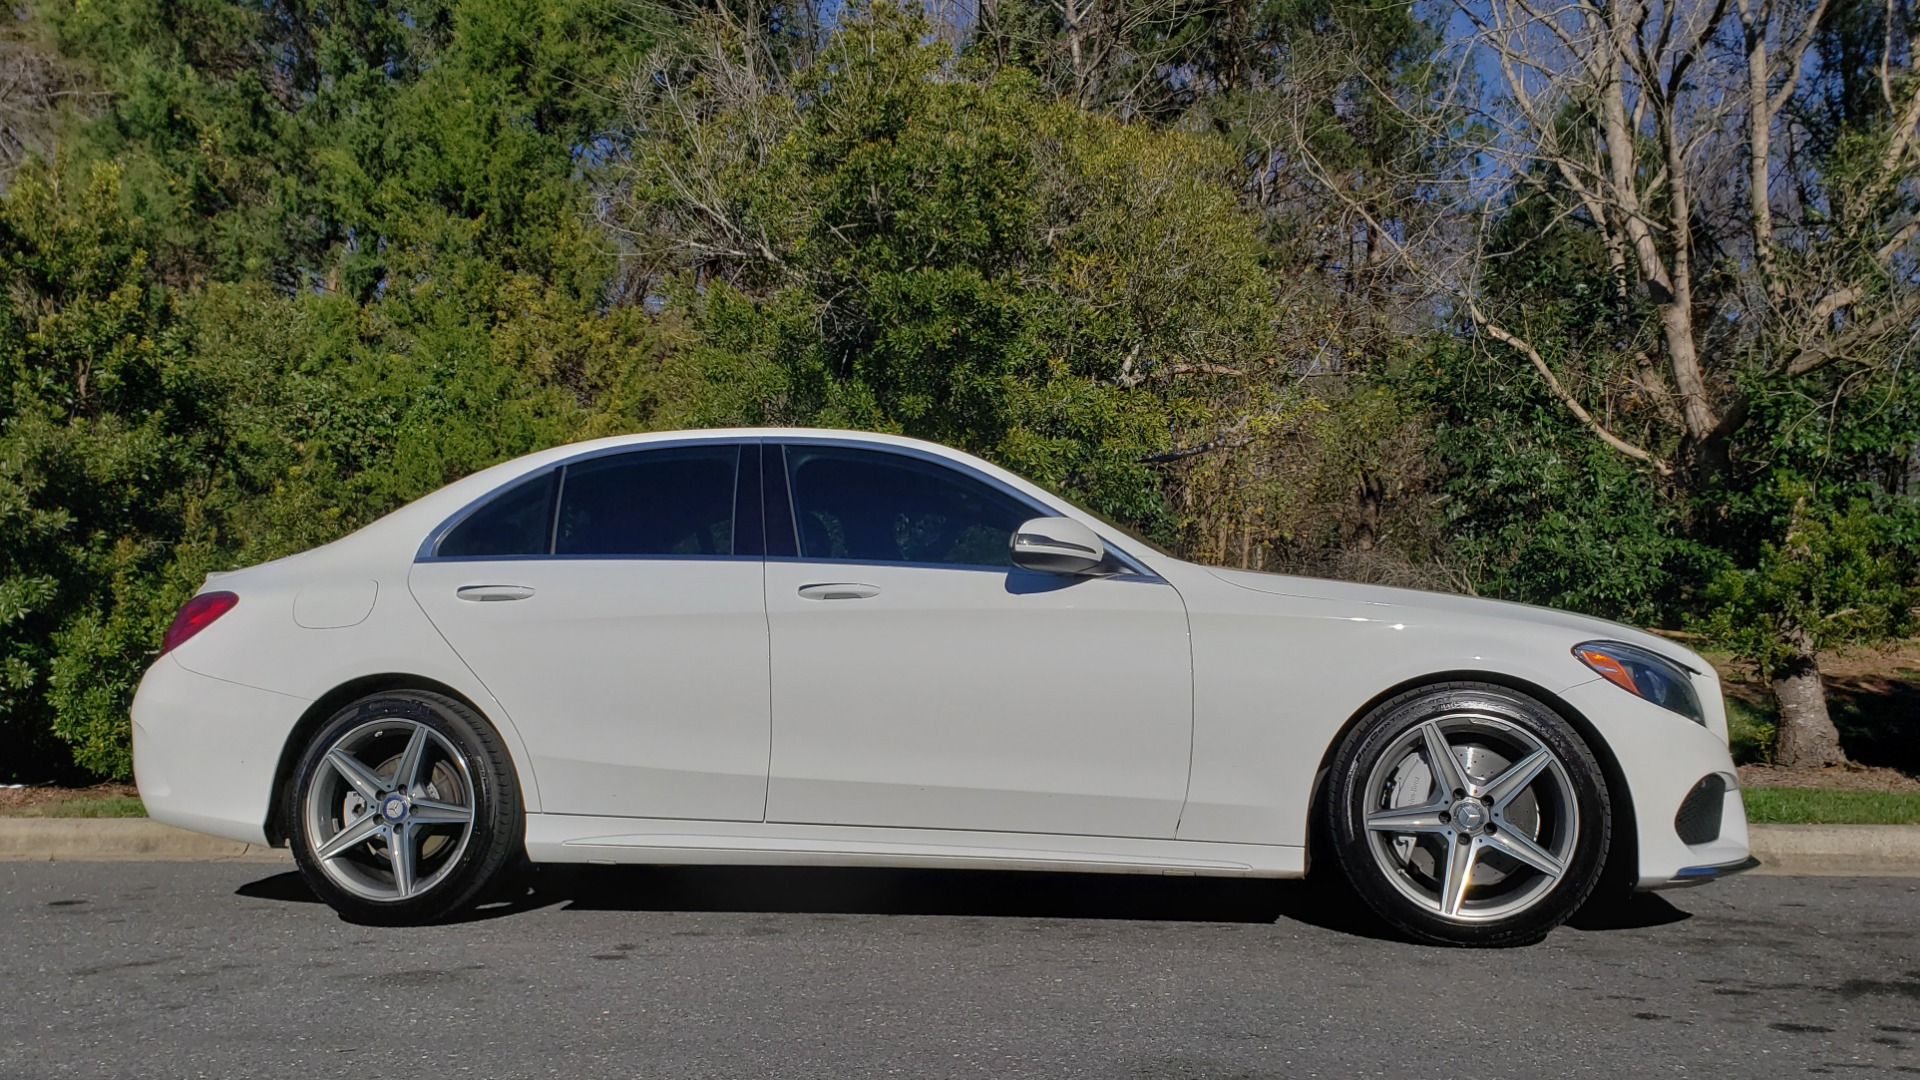 Used 2017 Mercedes-Benz C-CLASS C 300 SPORT / PREM PKG / PANO-ROOF / NAV / HTD STST / REARVIEW for sale Sold at Formula Imports in Charlotte NC 28227 5